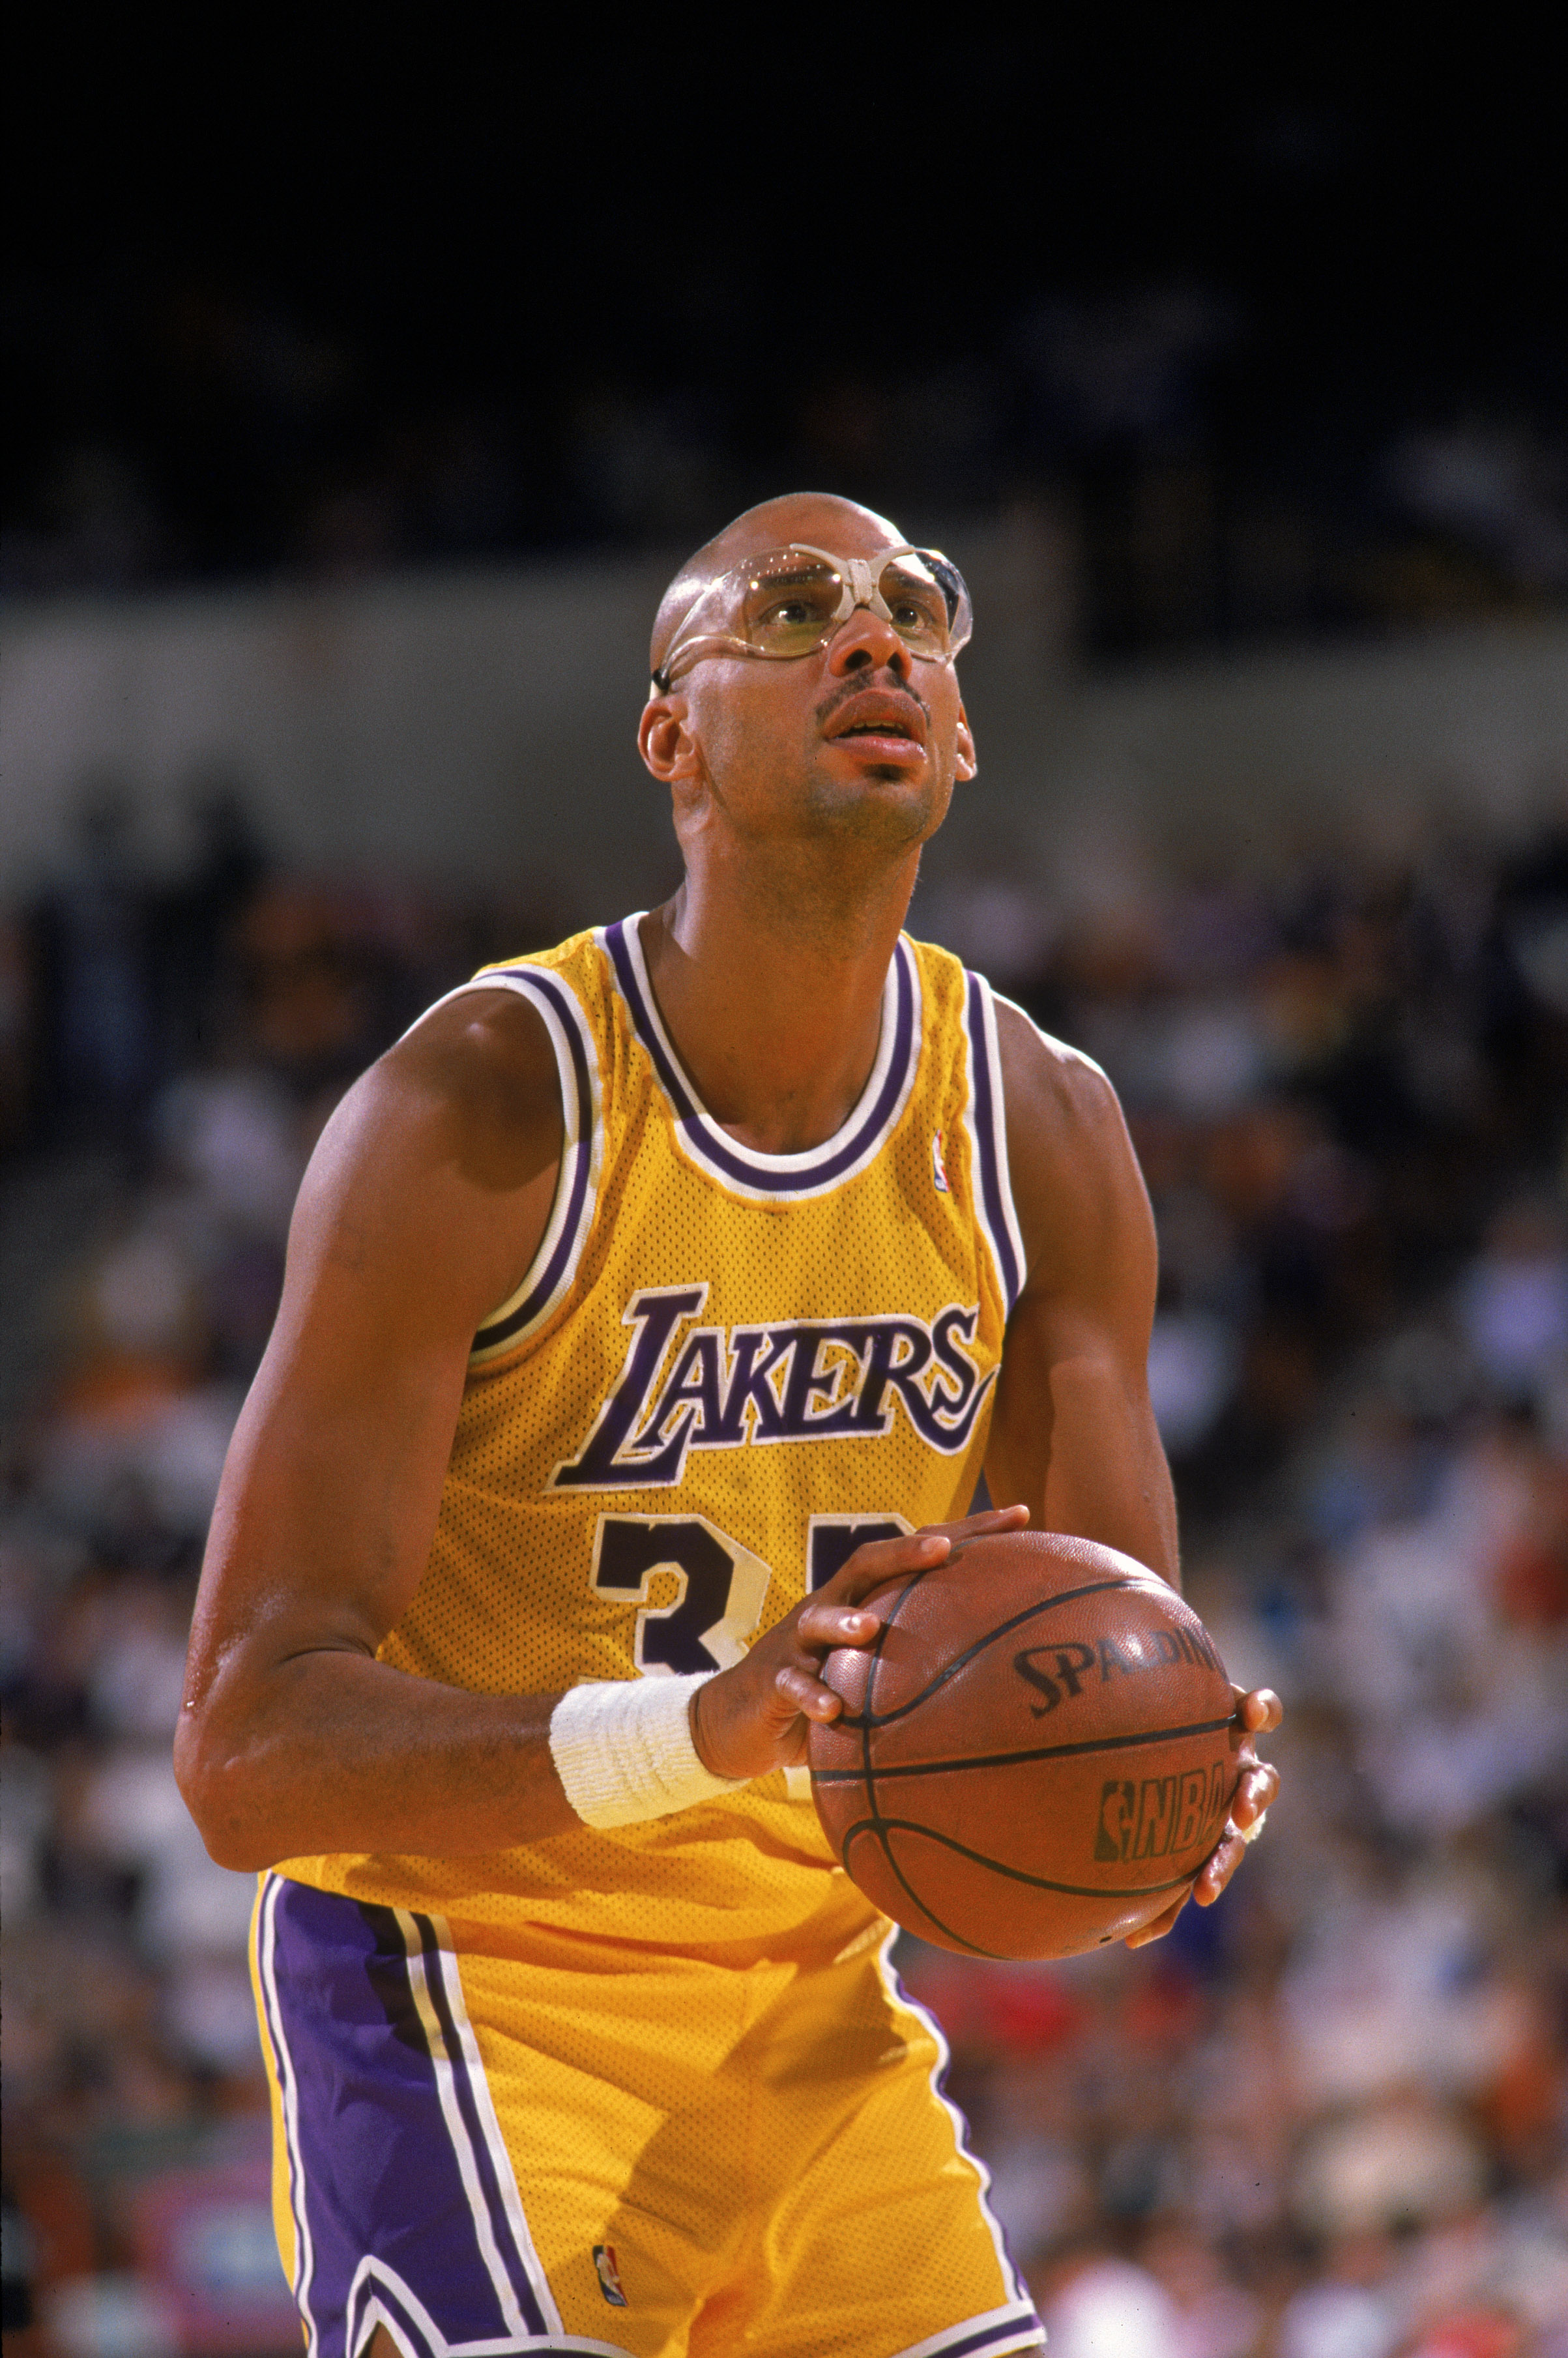 LOS ANGELES - 1987:  Kareem Abdul-Jabbar #33 of the Los Angeles Lakers shoots a free throw during an NBA game at the Great Western Forum in Los Angeles, California in 1987. (Photo by: Mike Powell/Getty Images)